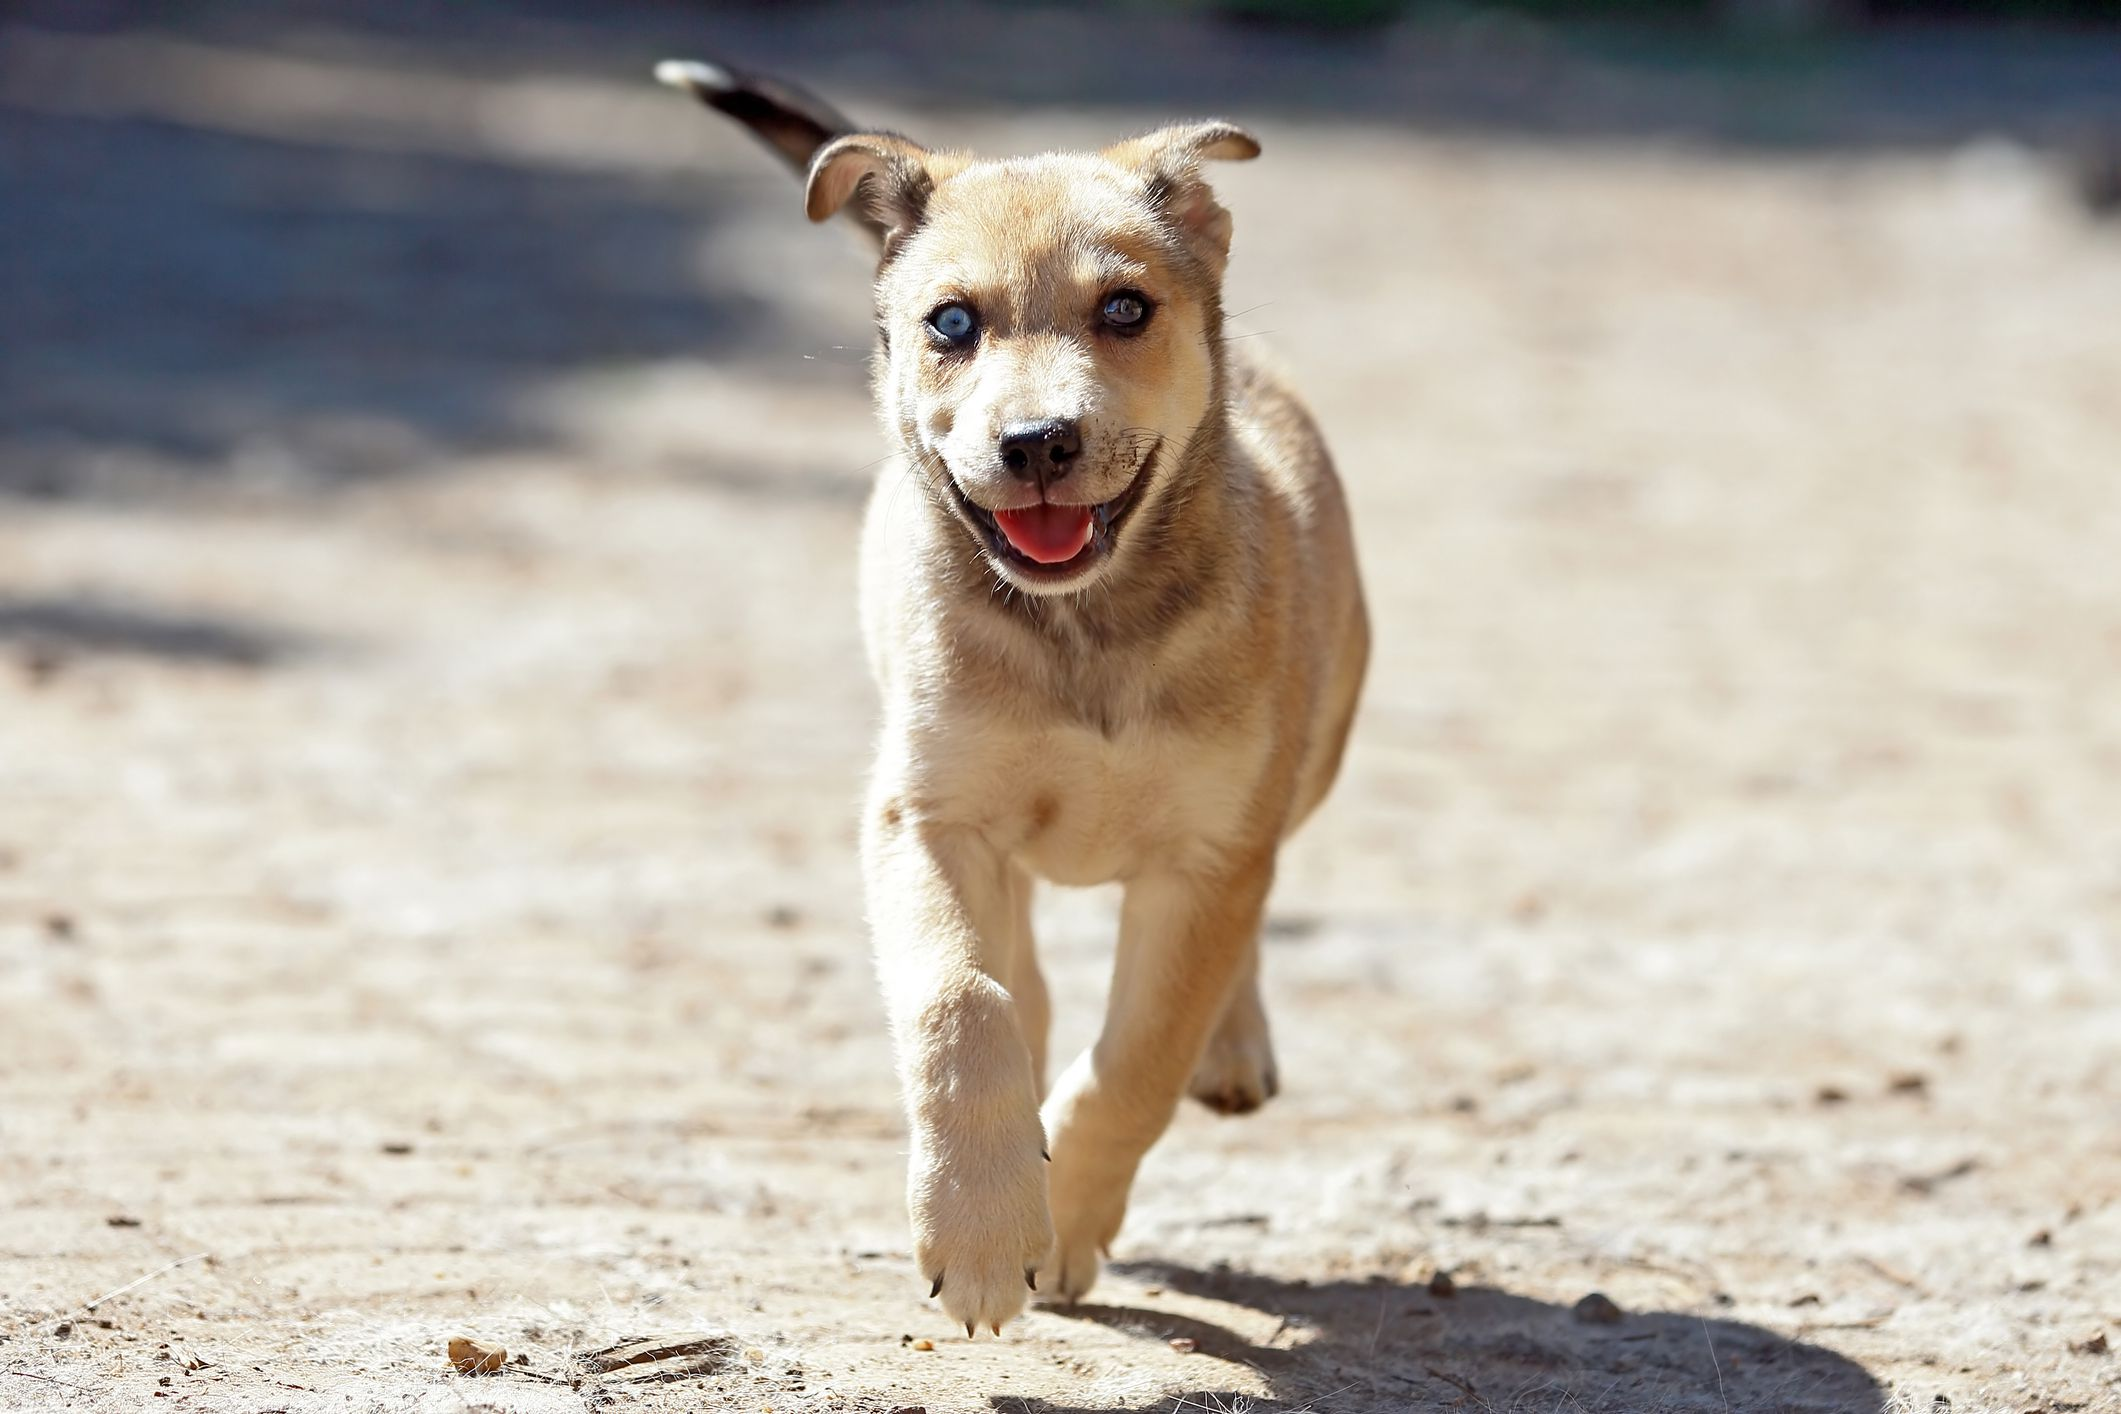 These 12 Dog Breeds Are Considered the Healthiest